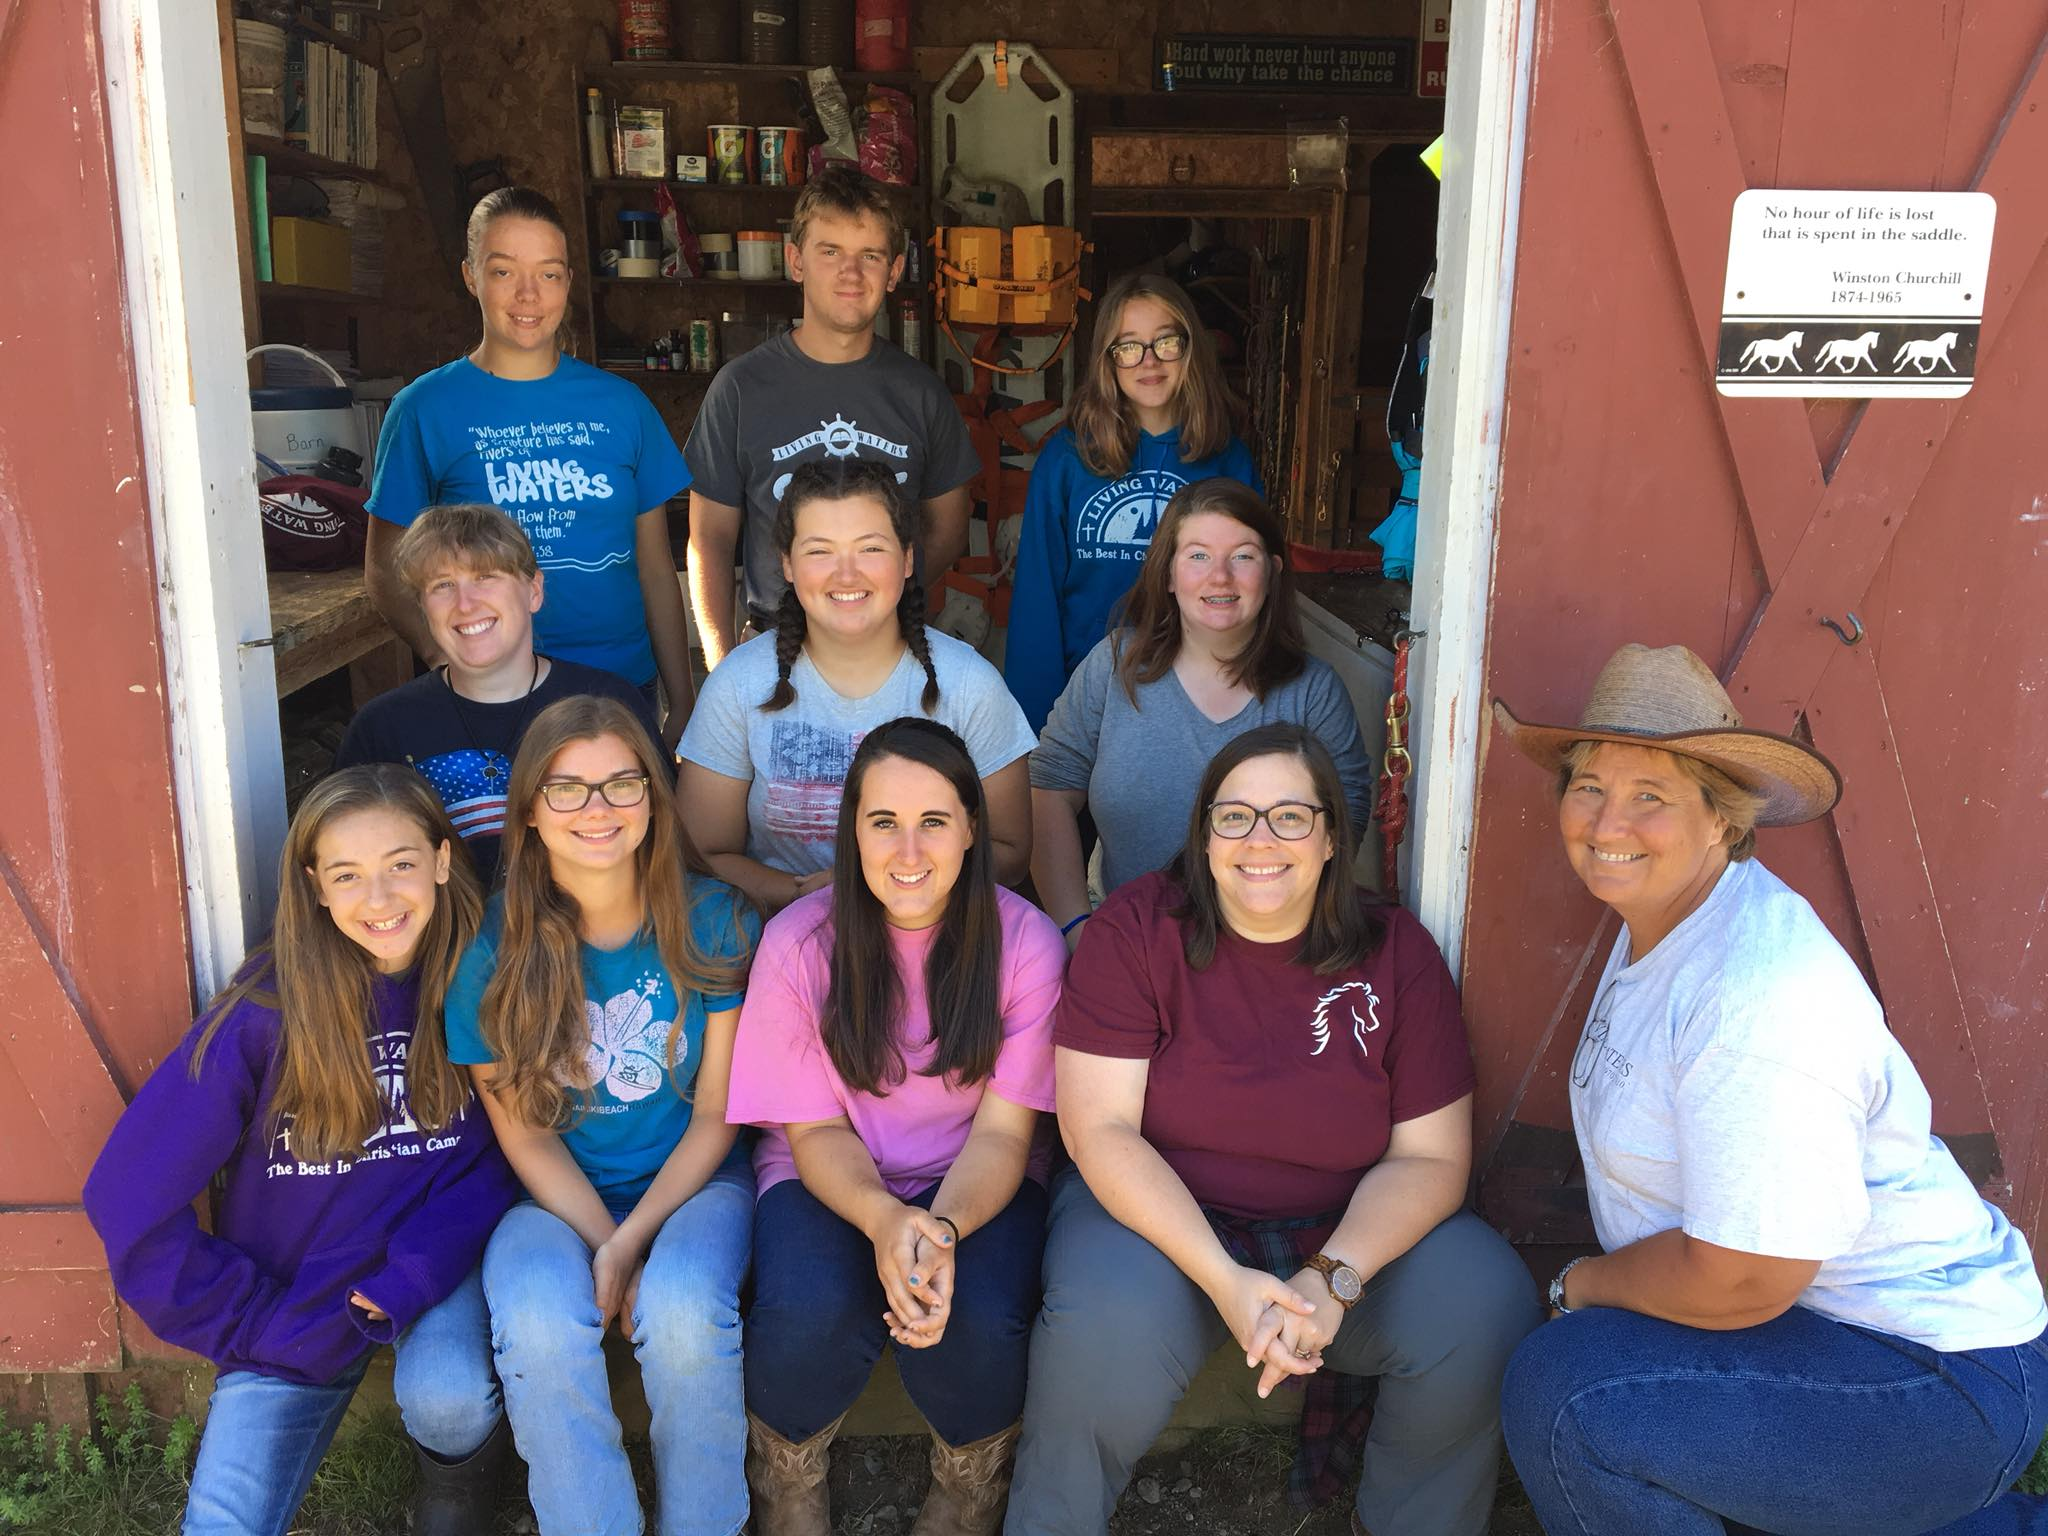 Shelby helped lead the Barn Staff again this year, and Gabriella volunteered as a Junior Wrangler. Somehow Gabriella weaseled her way out of this photo though.